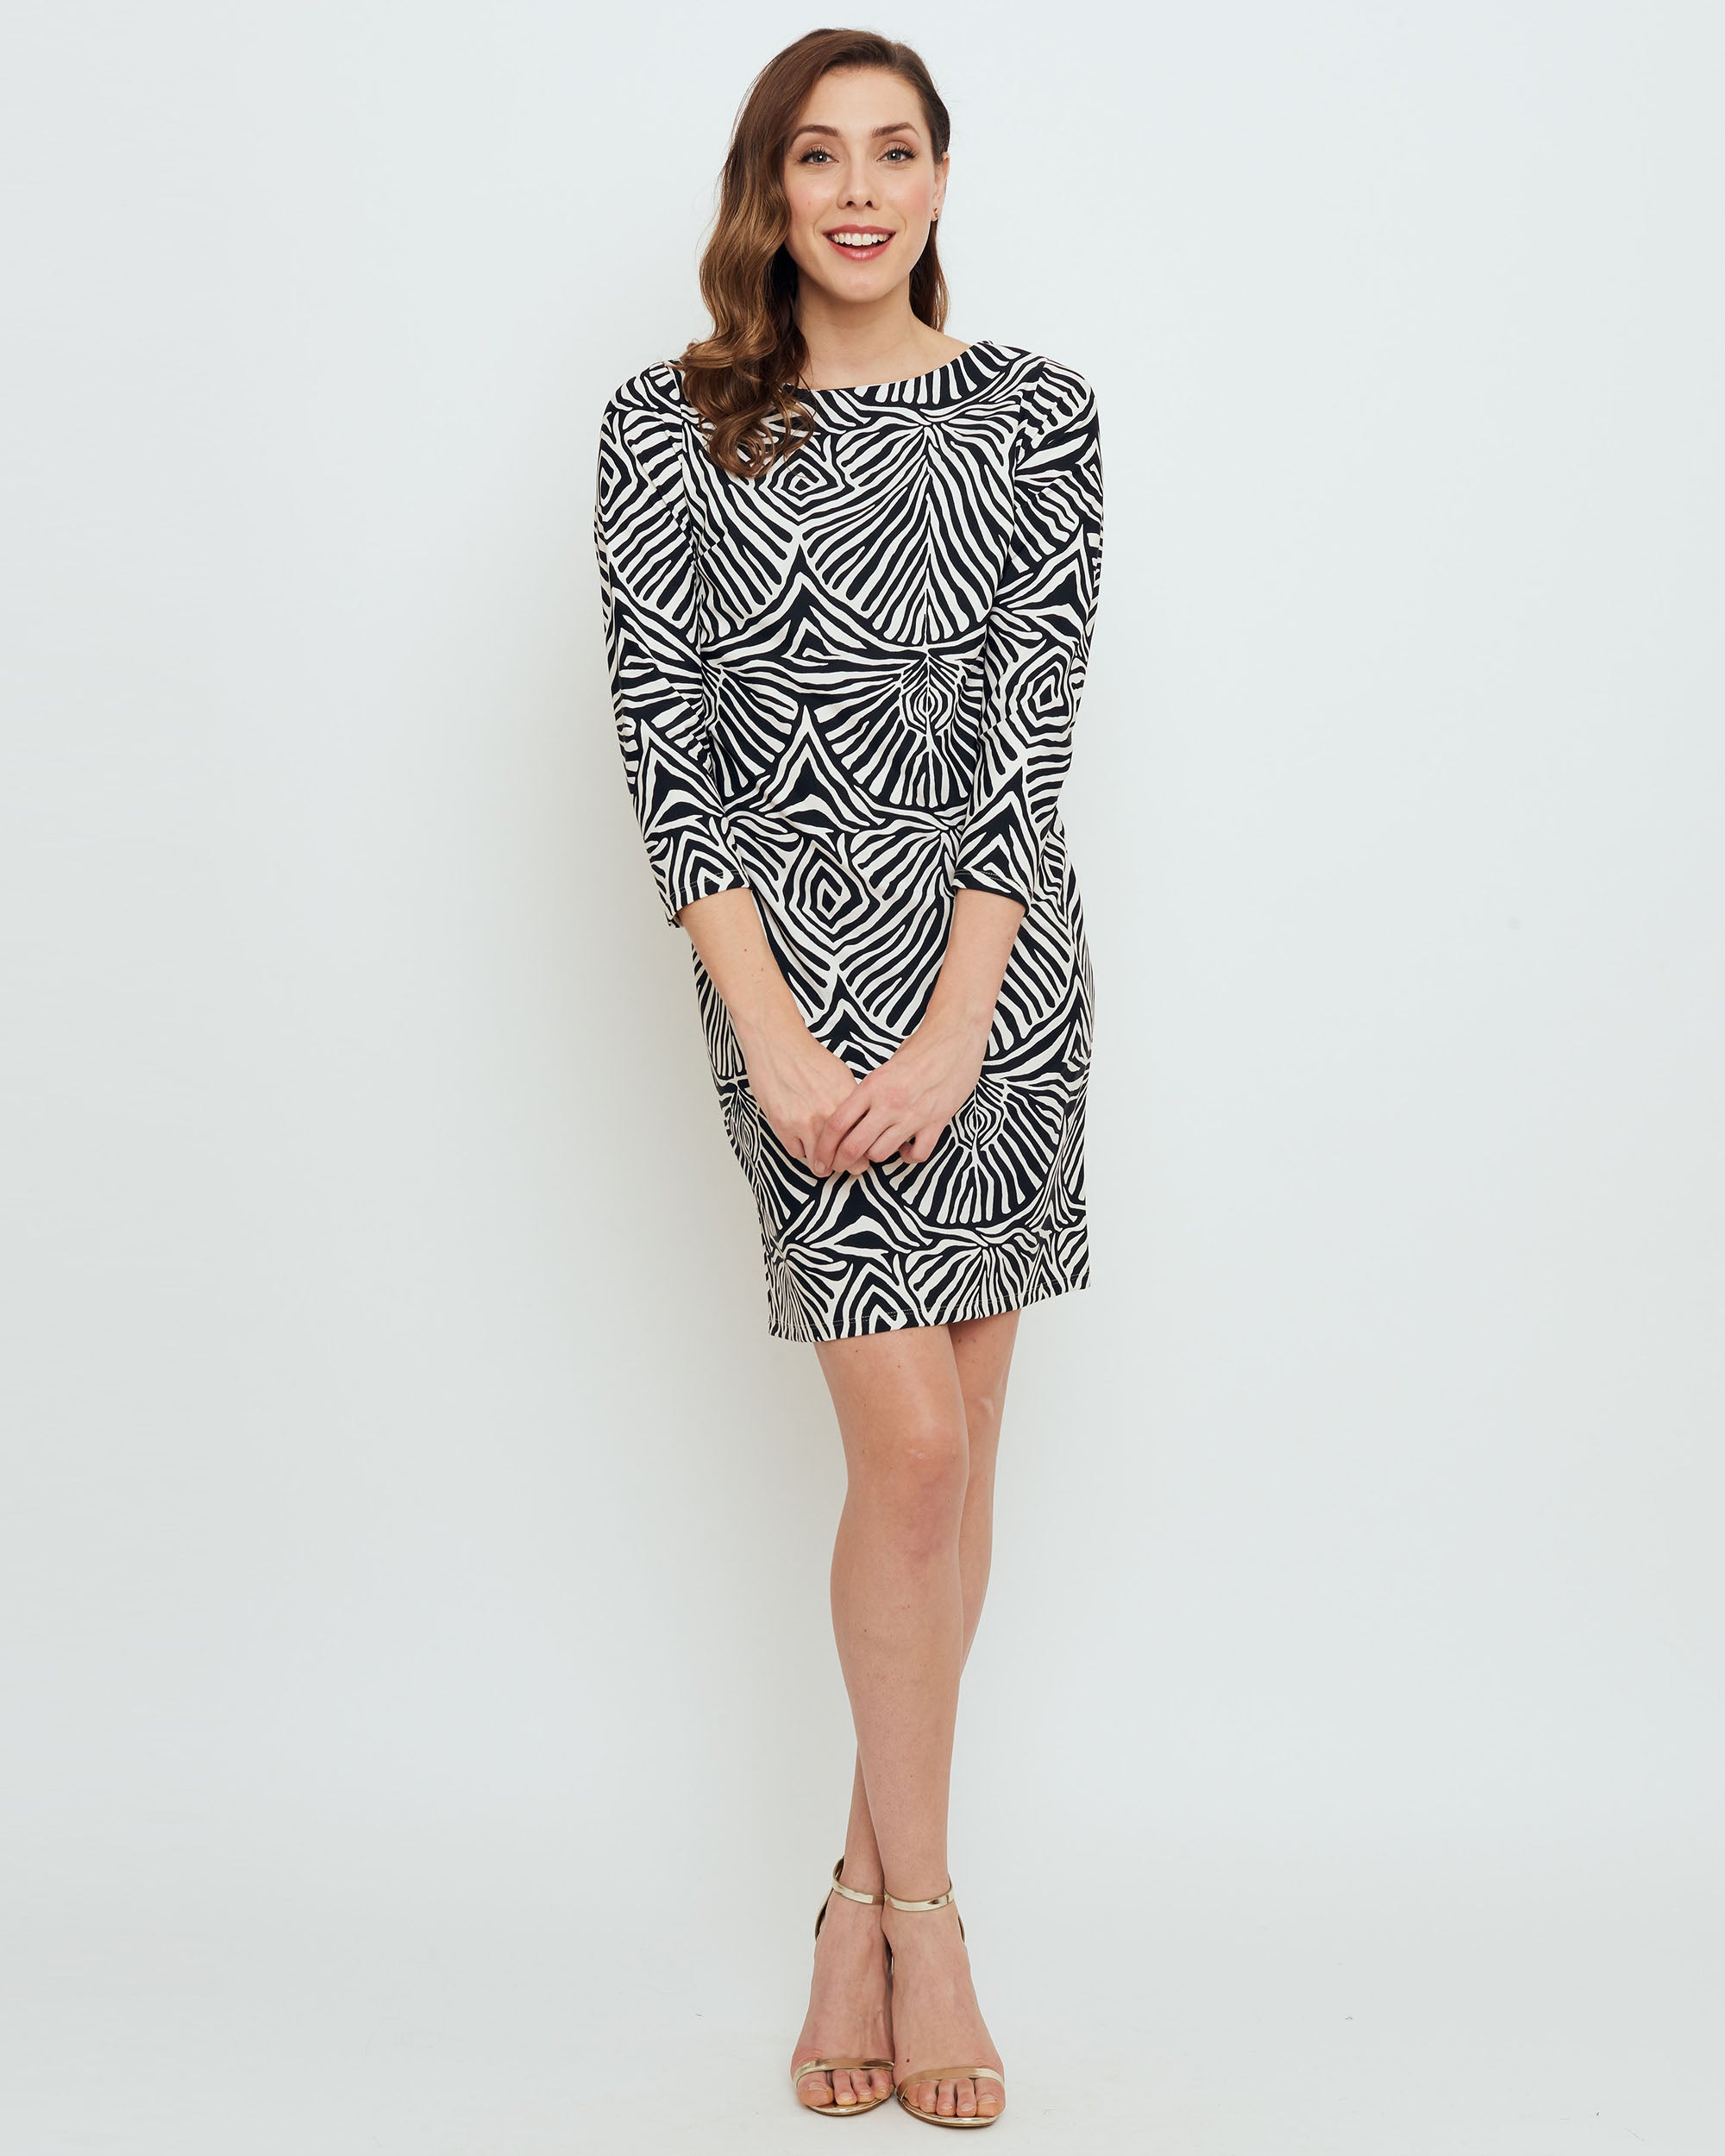 b1b1f94e1097 Adonara 3/4 Sleeve Boatneck Dress in Black Safari Stripes - BO&NIC